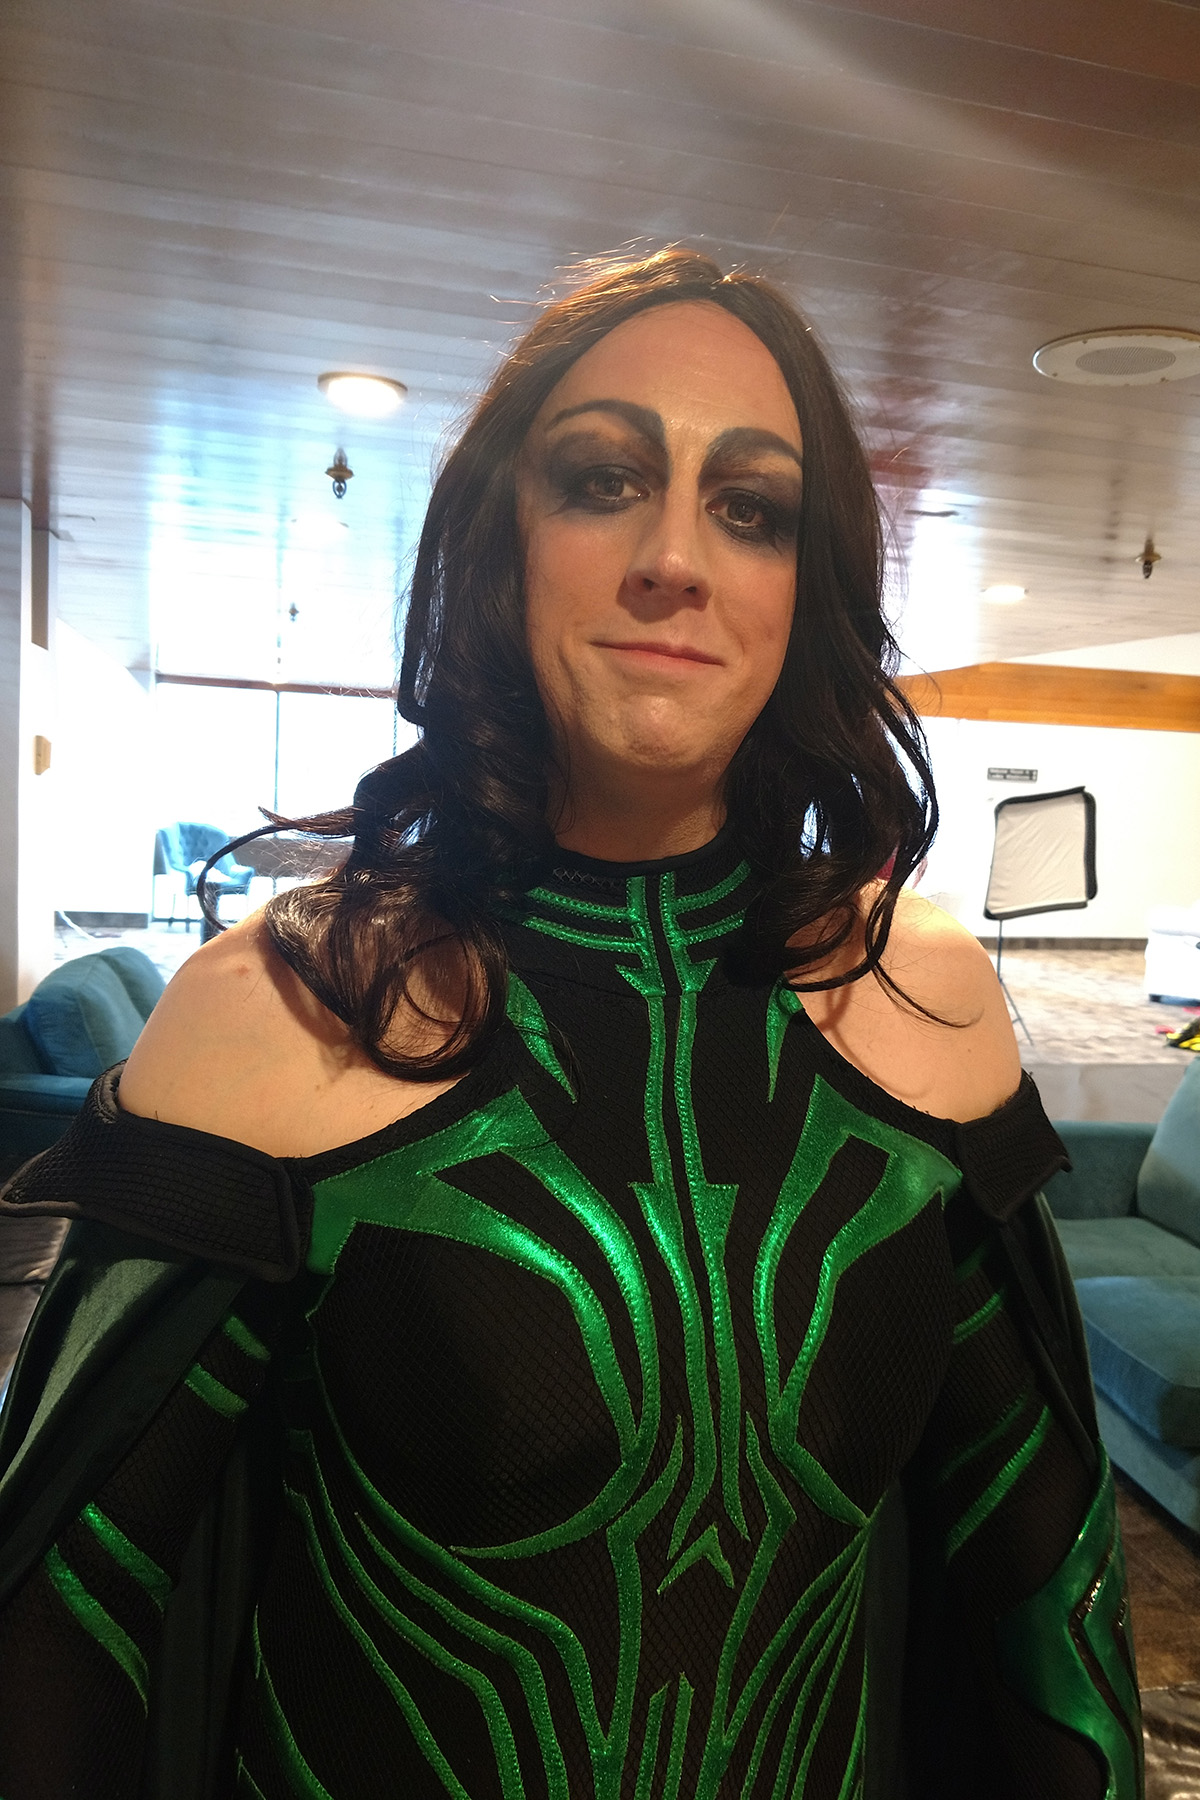 A dude in full Hela costume, hair, and makeup.